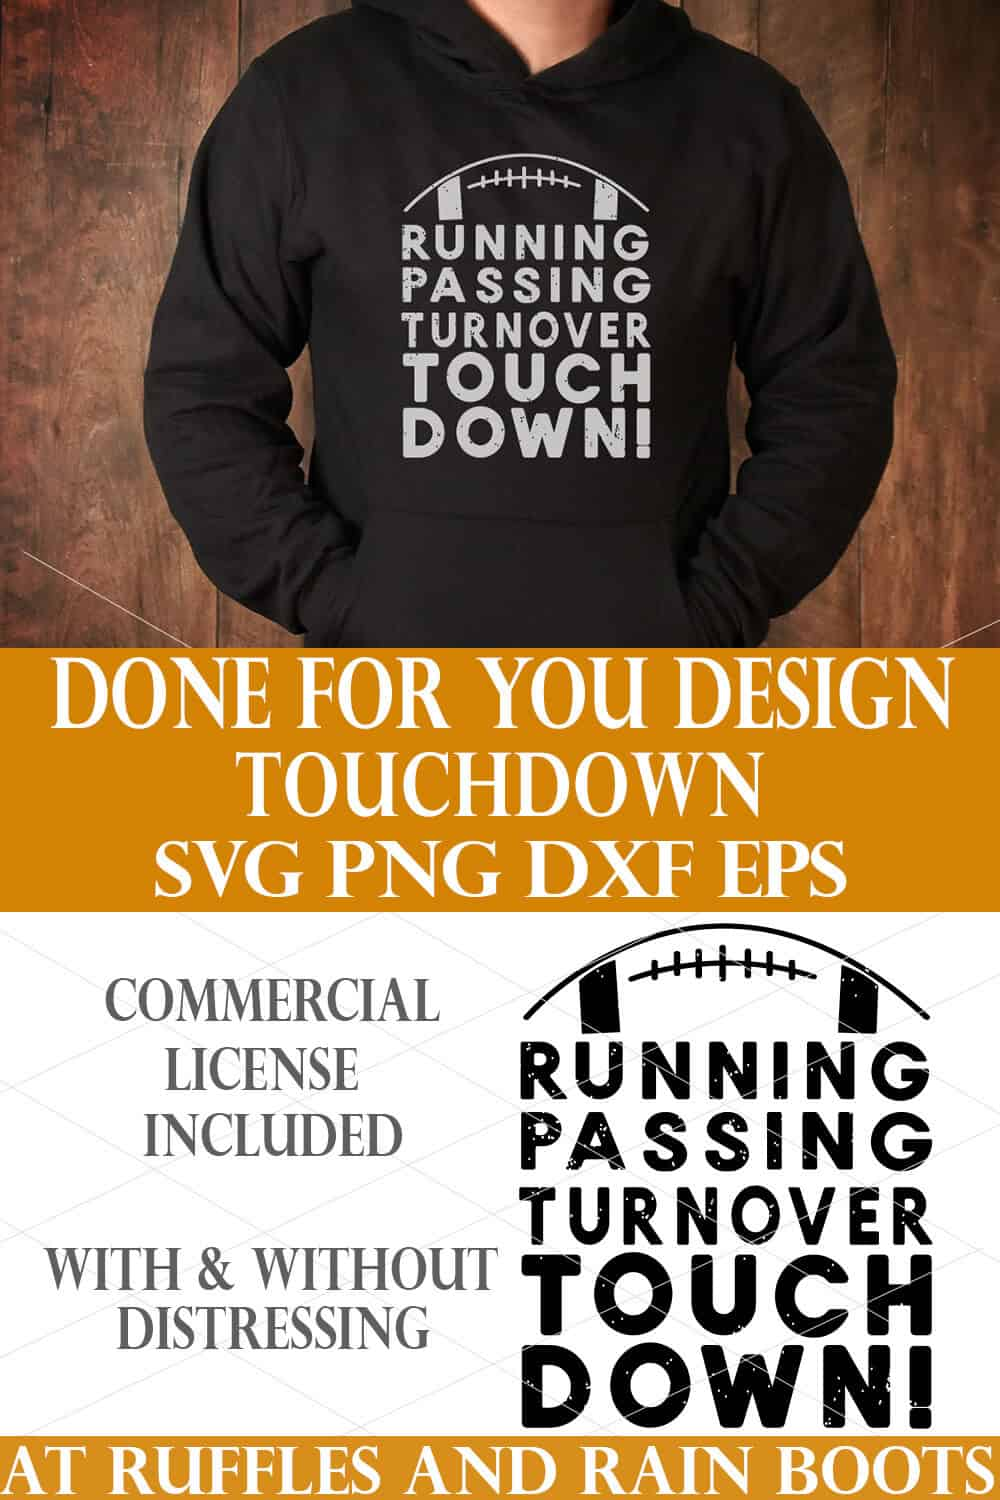 vertical collage of football cut file touchdown svg on a black hoodie in a light gray vinyl made with cricut maker by ruffles and rain boots